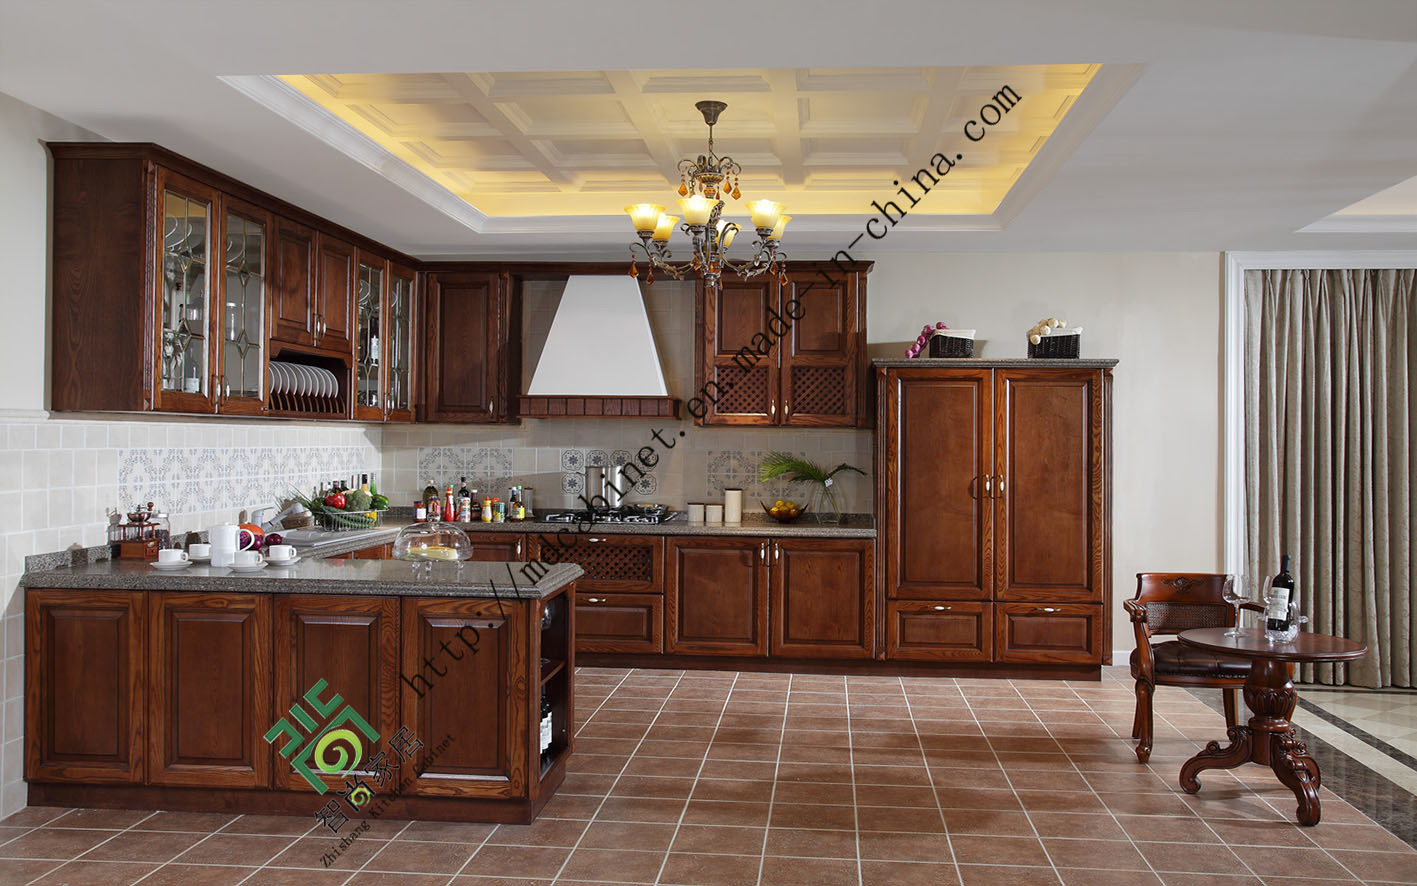 Latest in kitchen cabinets the best inspiration for for New style kitchen cabinets